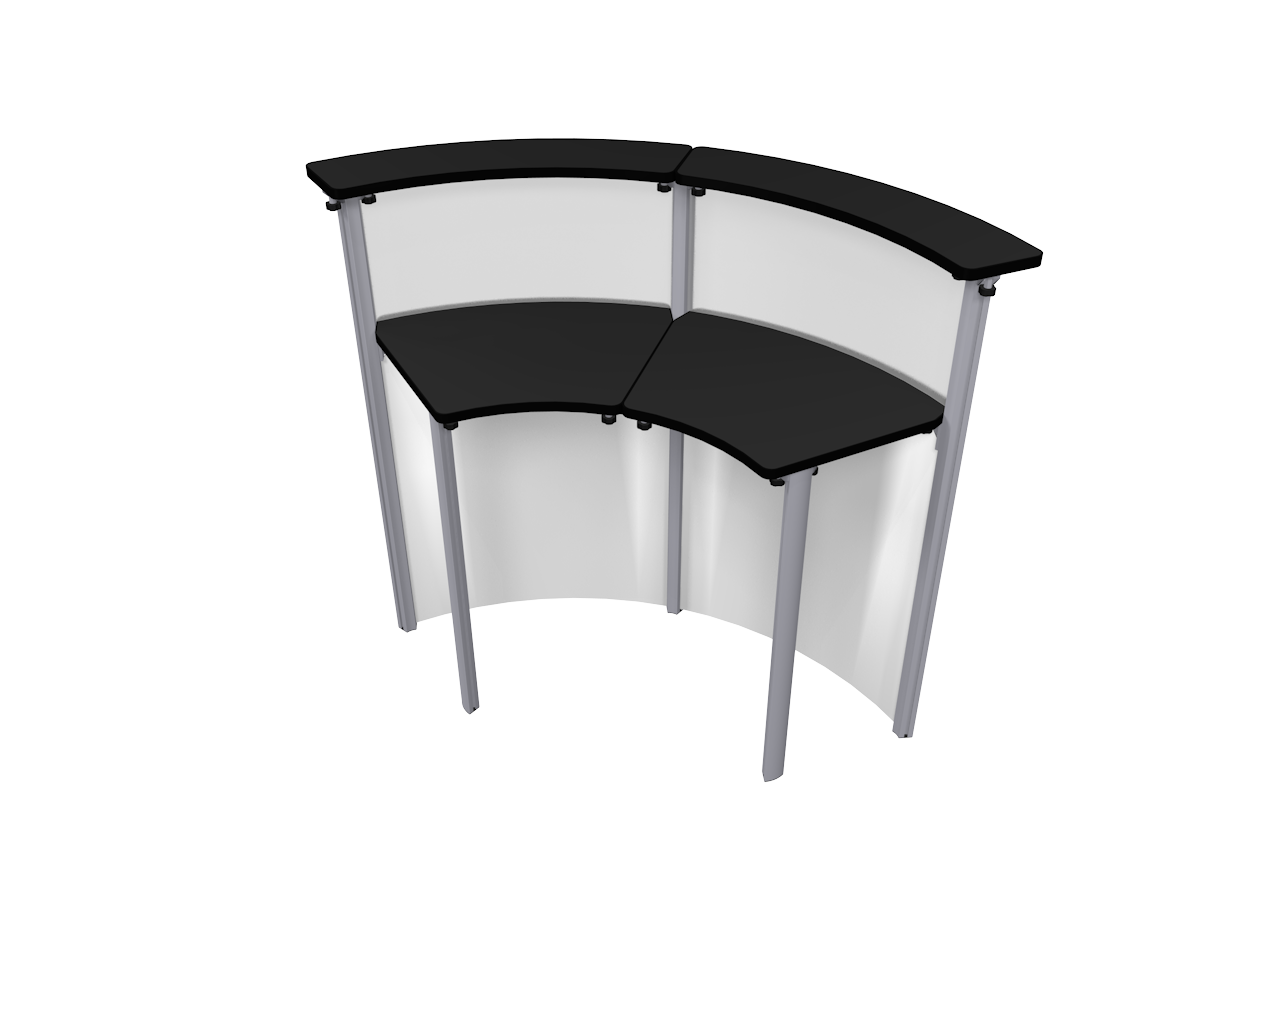 Exhibitline RD45.2 Reception Desk